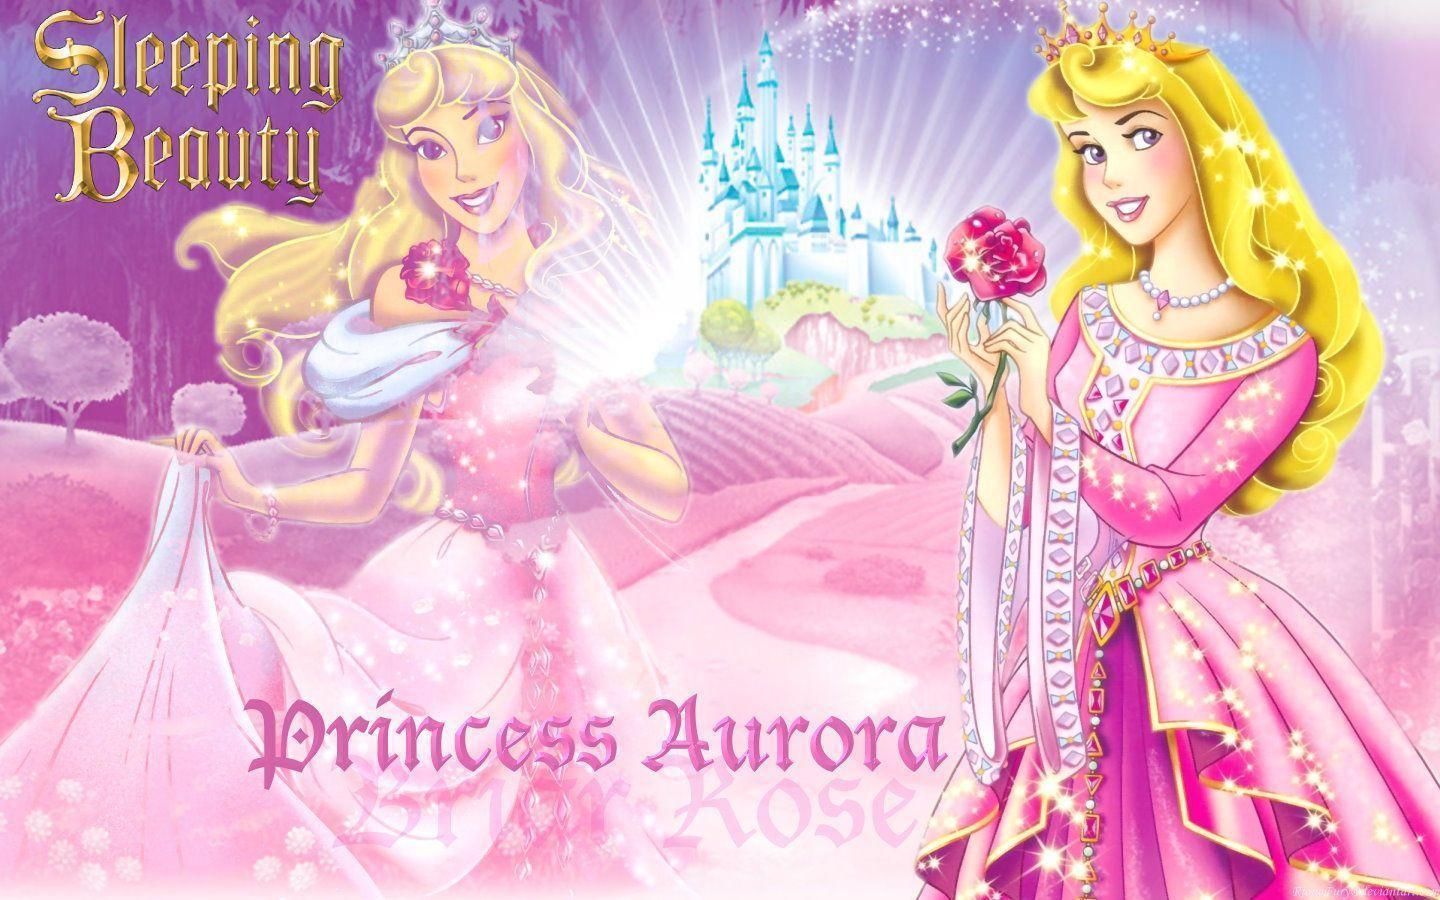 Disney Princess Sleeping Beauty Wallpapers